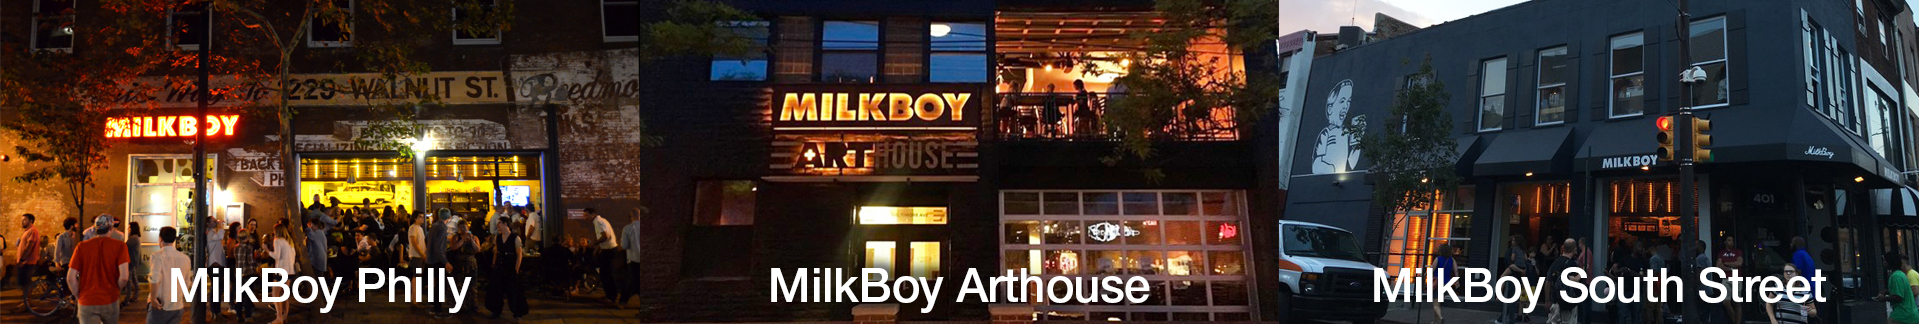 MilkBoy-Locations